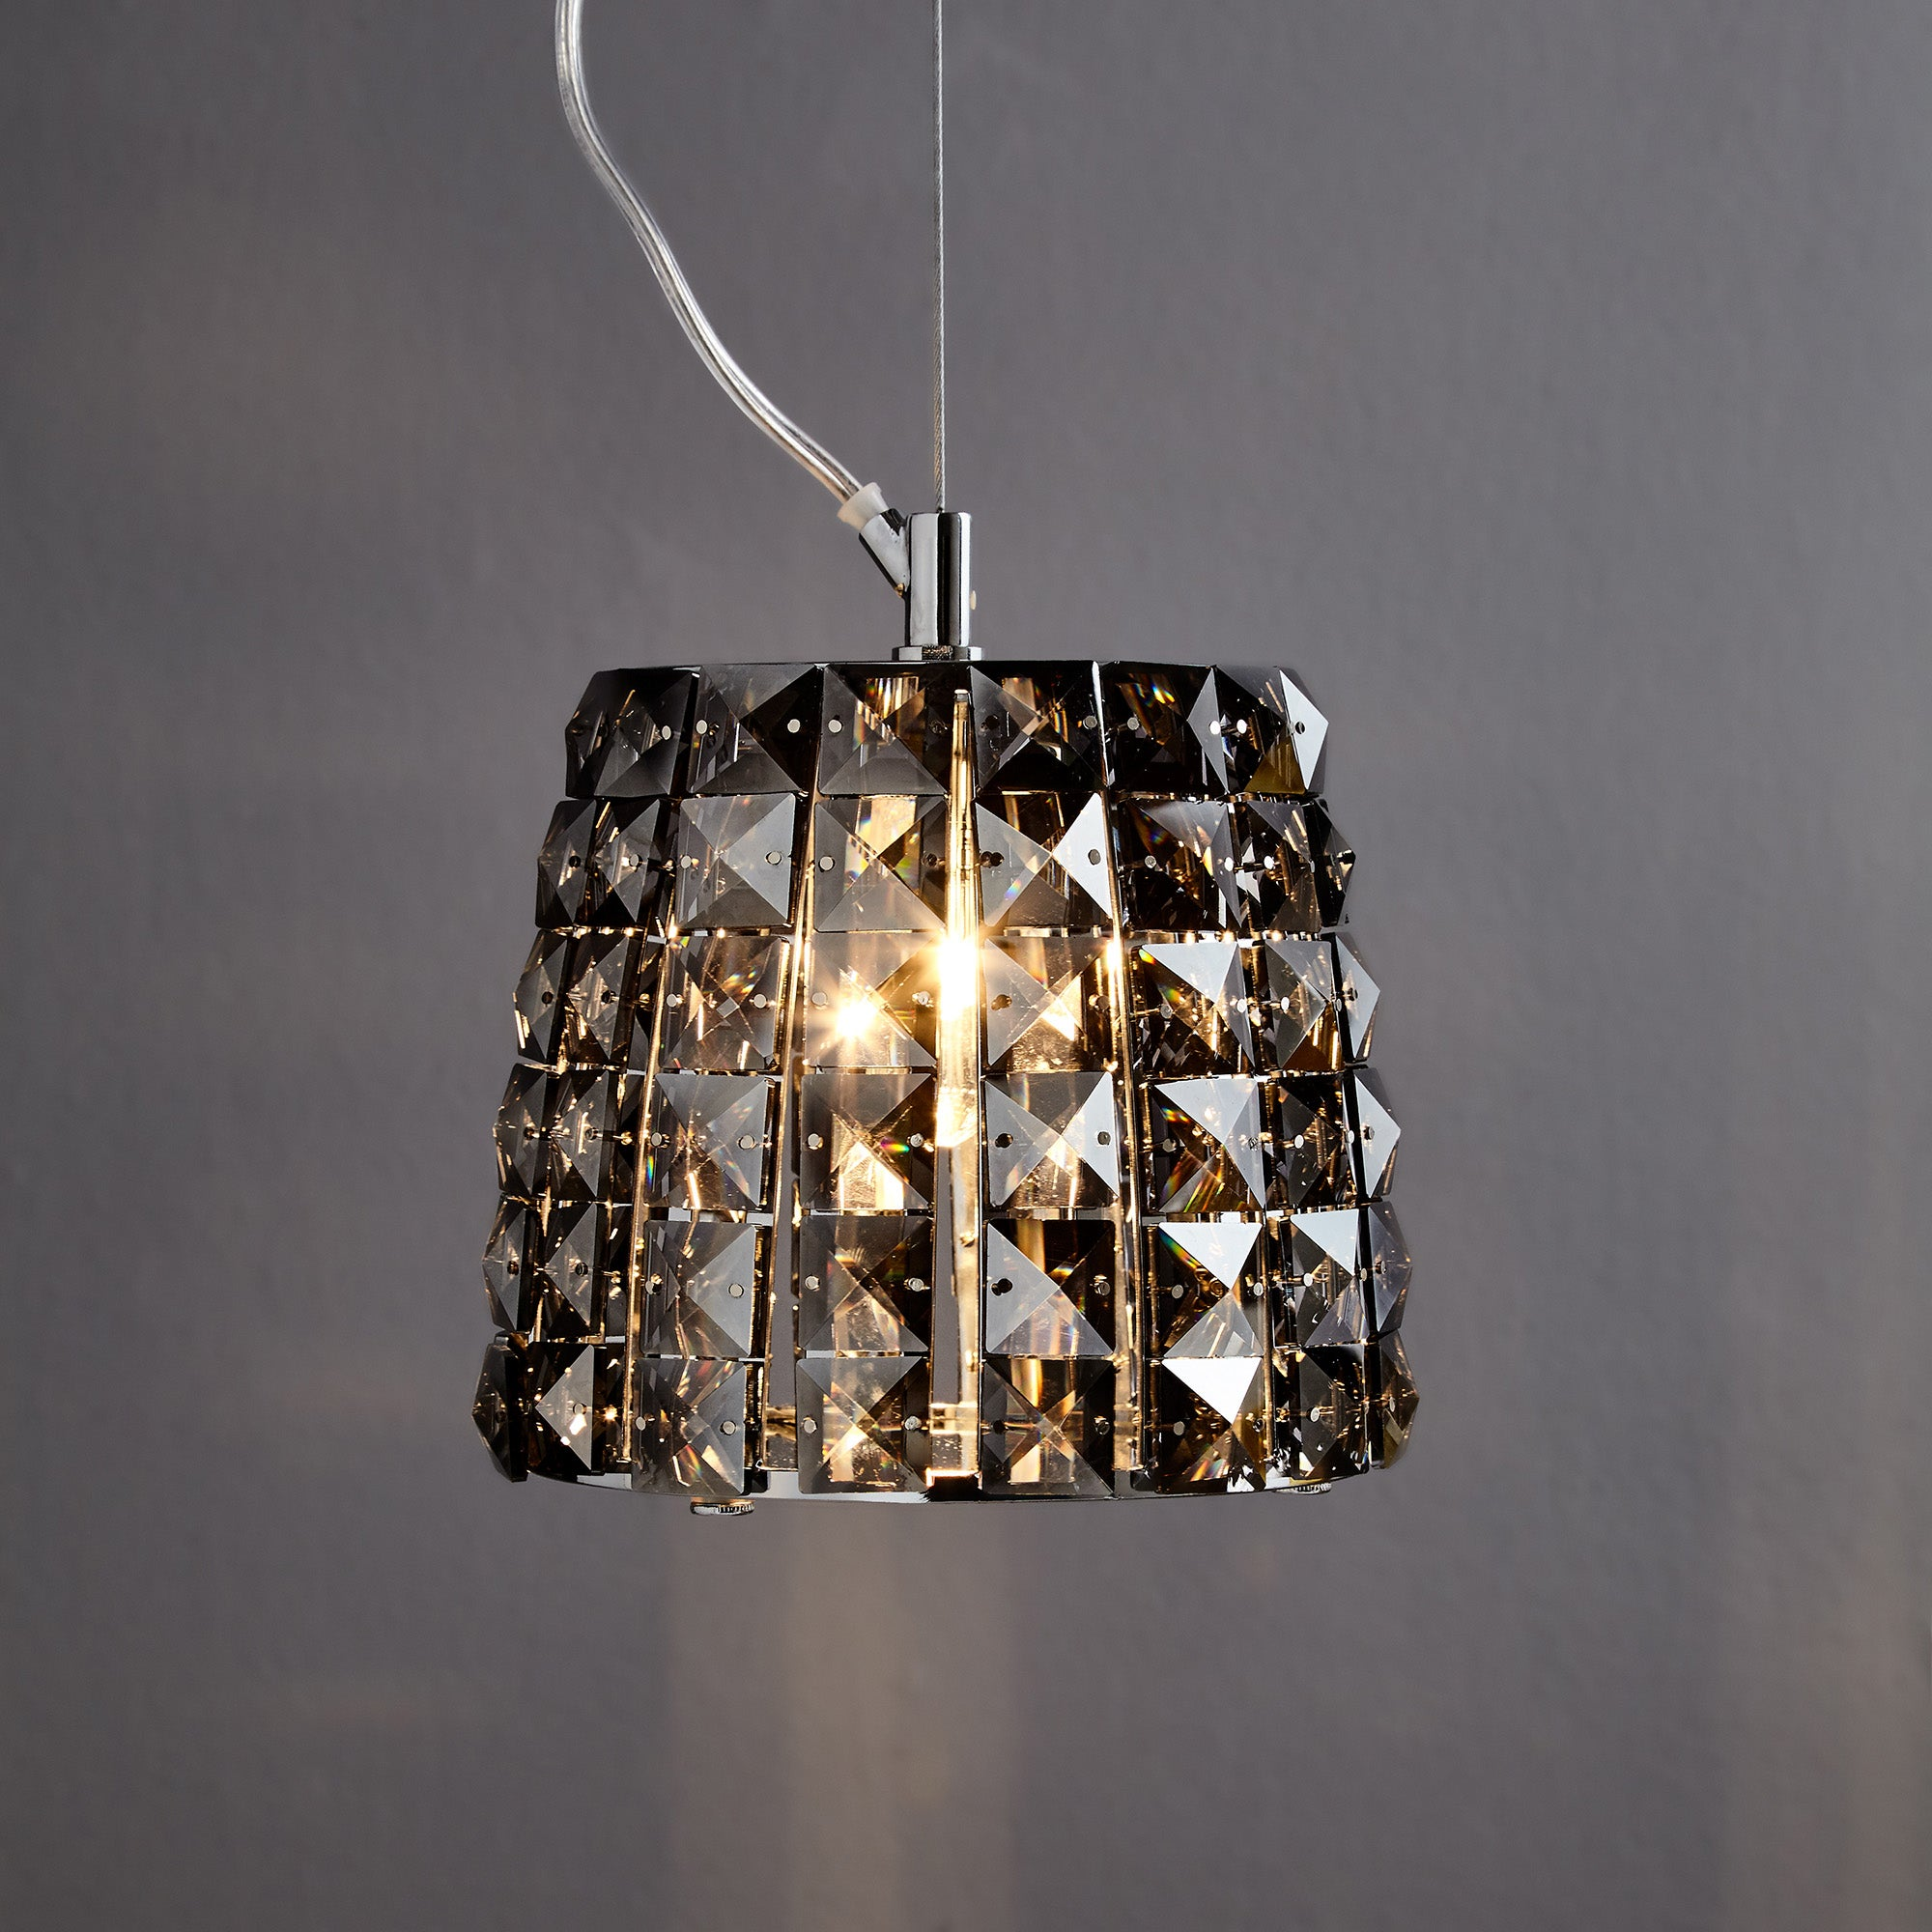 Image of Marquis by Waterford Moy Black Chrome Light Pendant Black